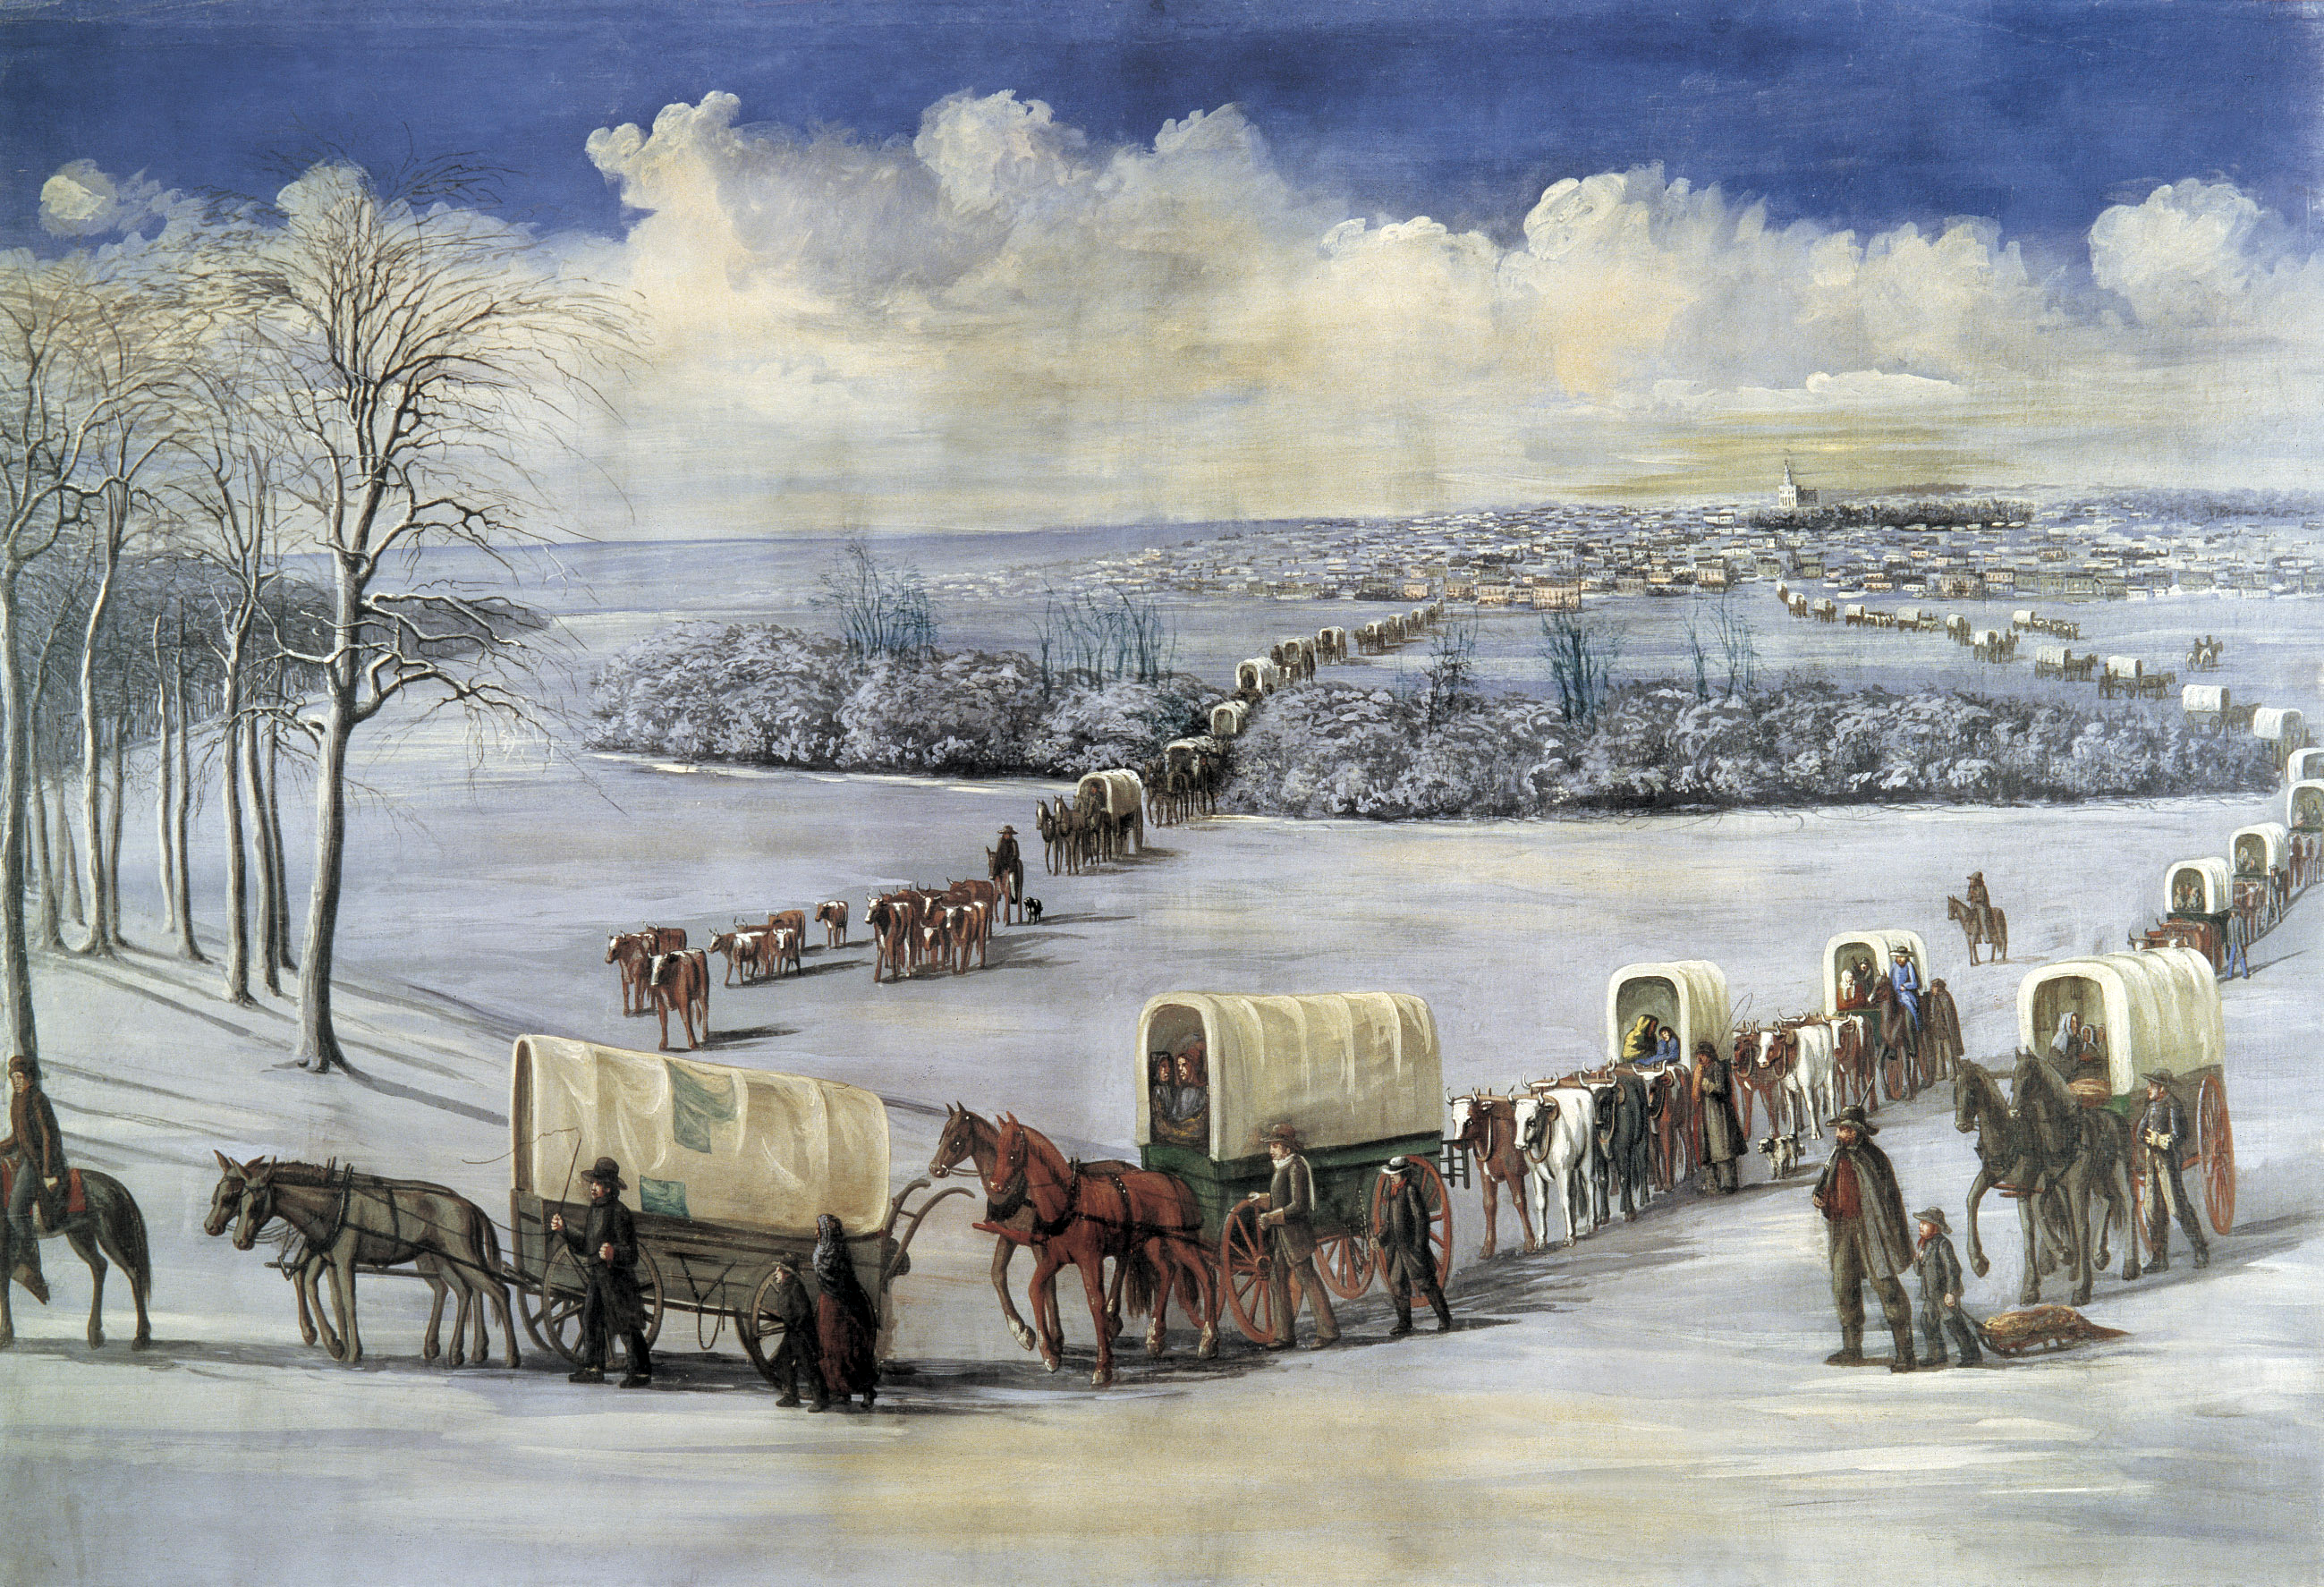 File:Crossing the Mississippi on the Ice by C.C.A. Christensen.png